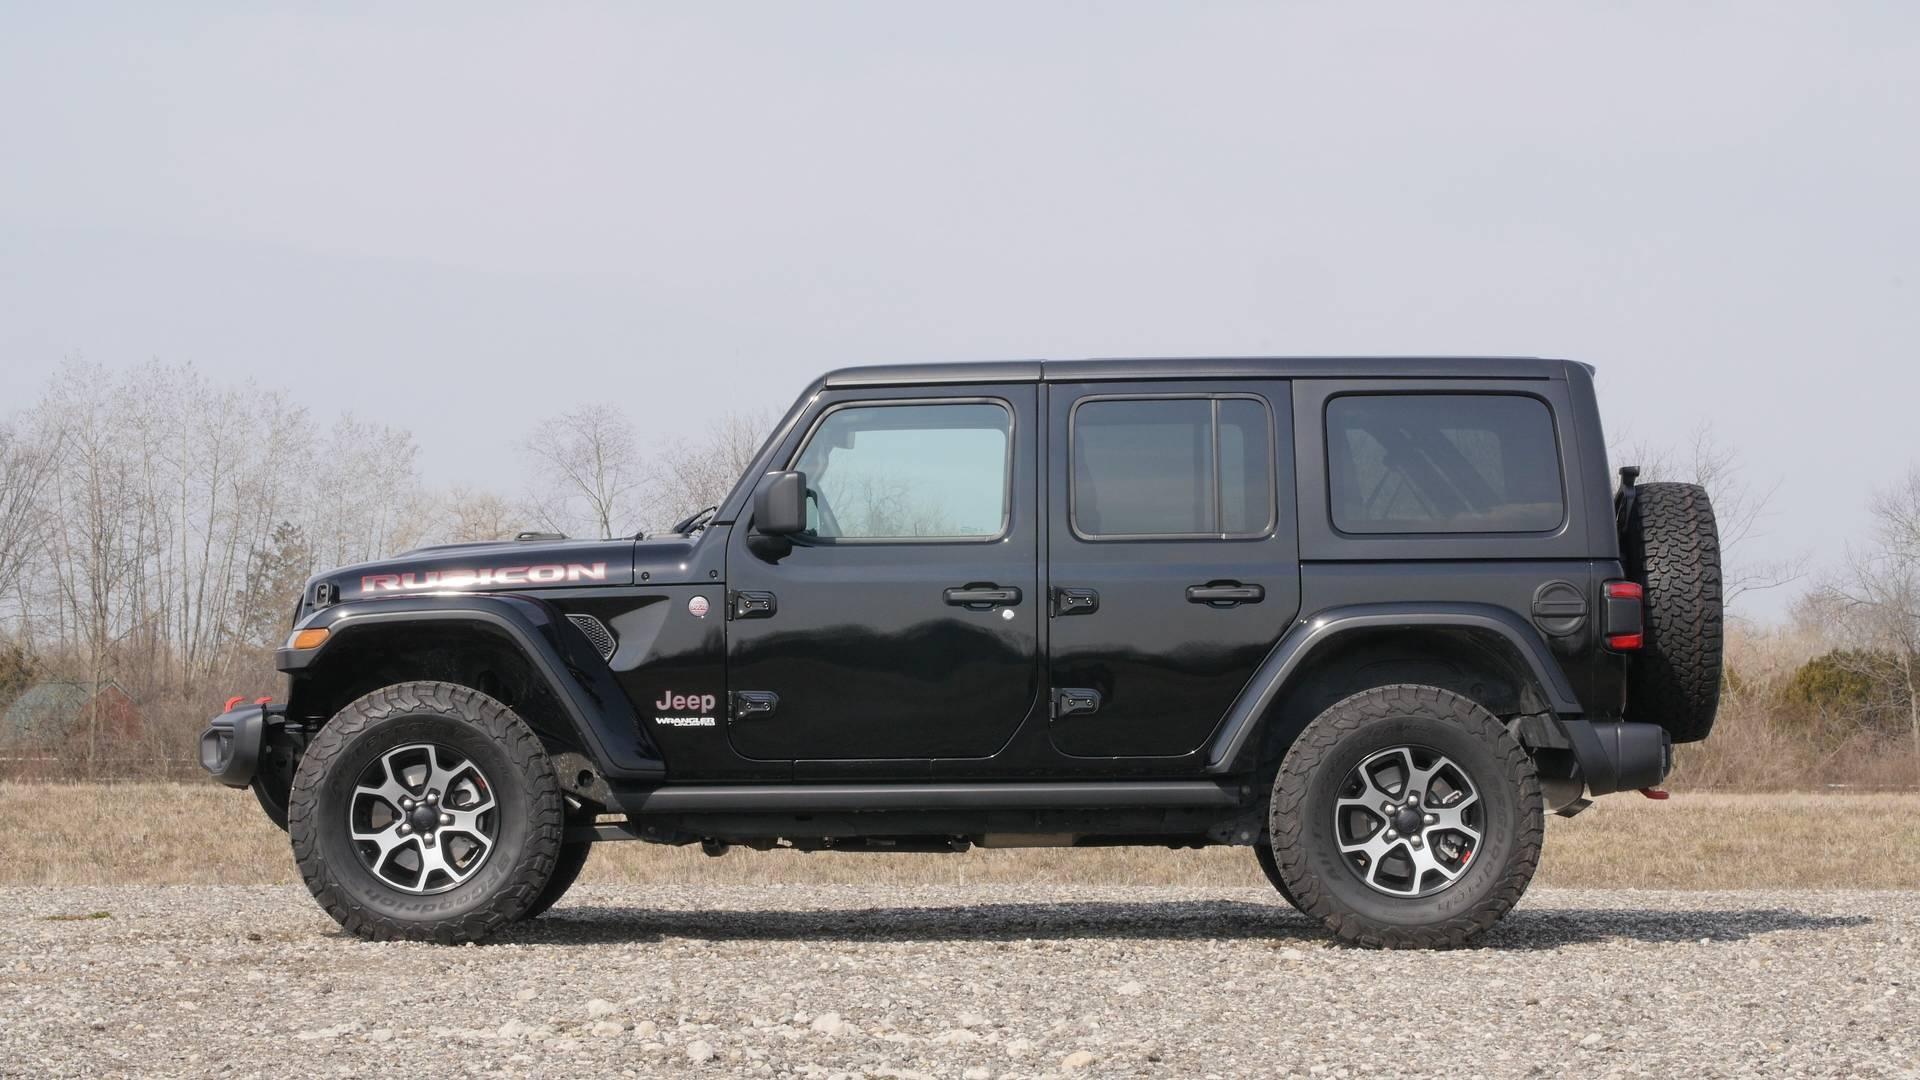 jeep anniversary unlimited continued quarter the front rubicon three bumpers photo wrangler wings features simple outer on x